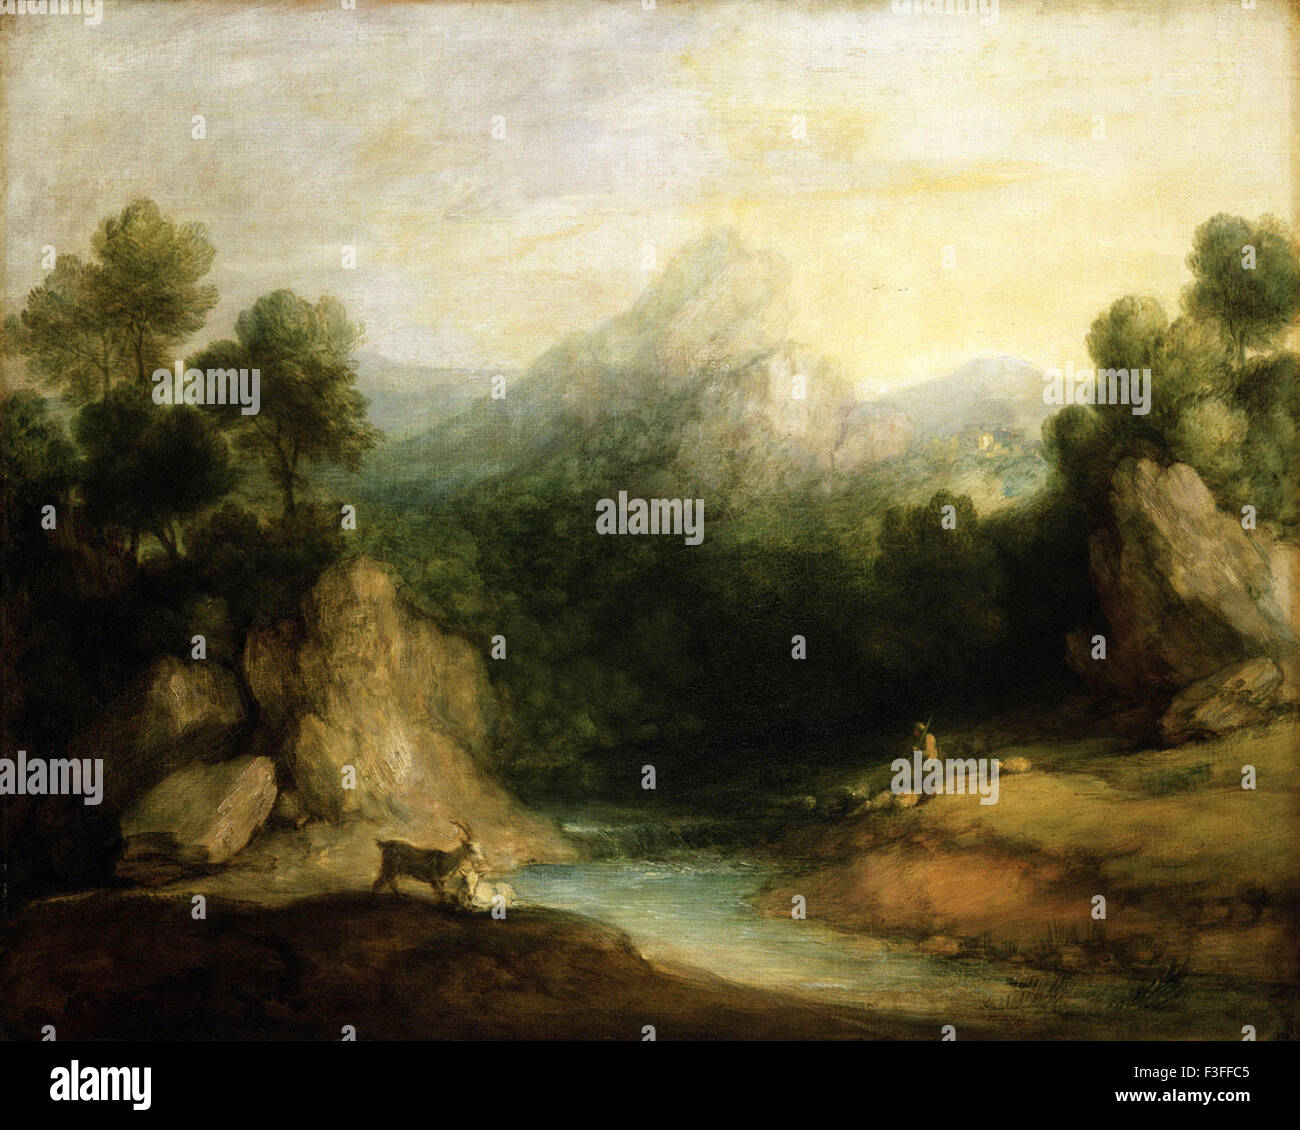 Thomas Gainsboroug - Pastoral Landscape (Rocky Mountain Valley with a Shepherd, Sheep, and Goats) - Stock Image